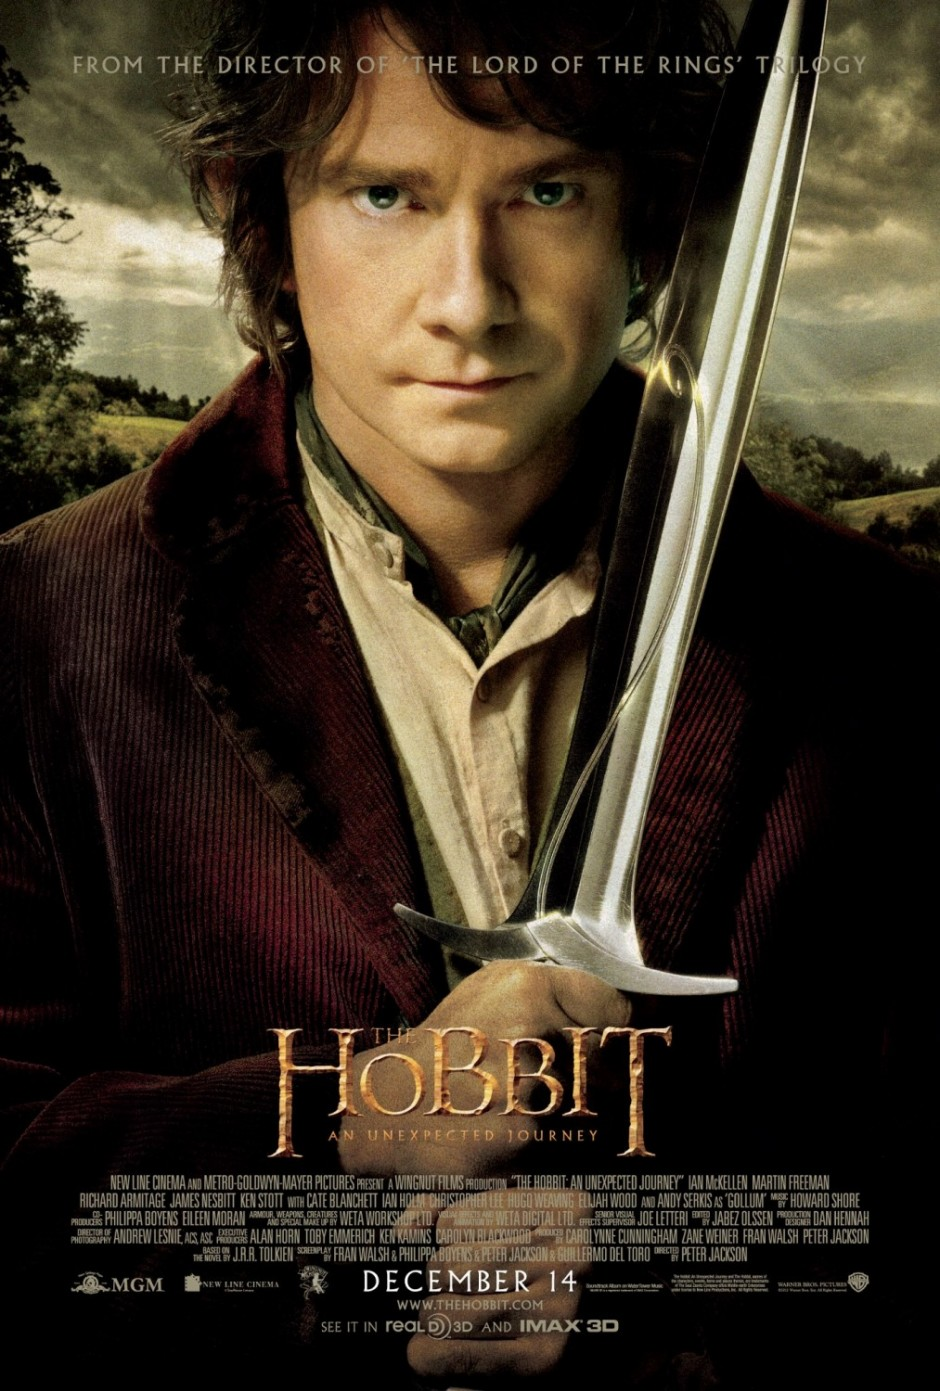 The Hobbit by J.R.R. Tolkien with Bilbo Baggins